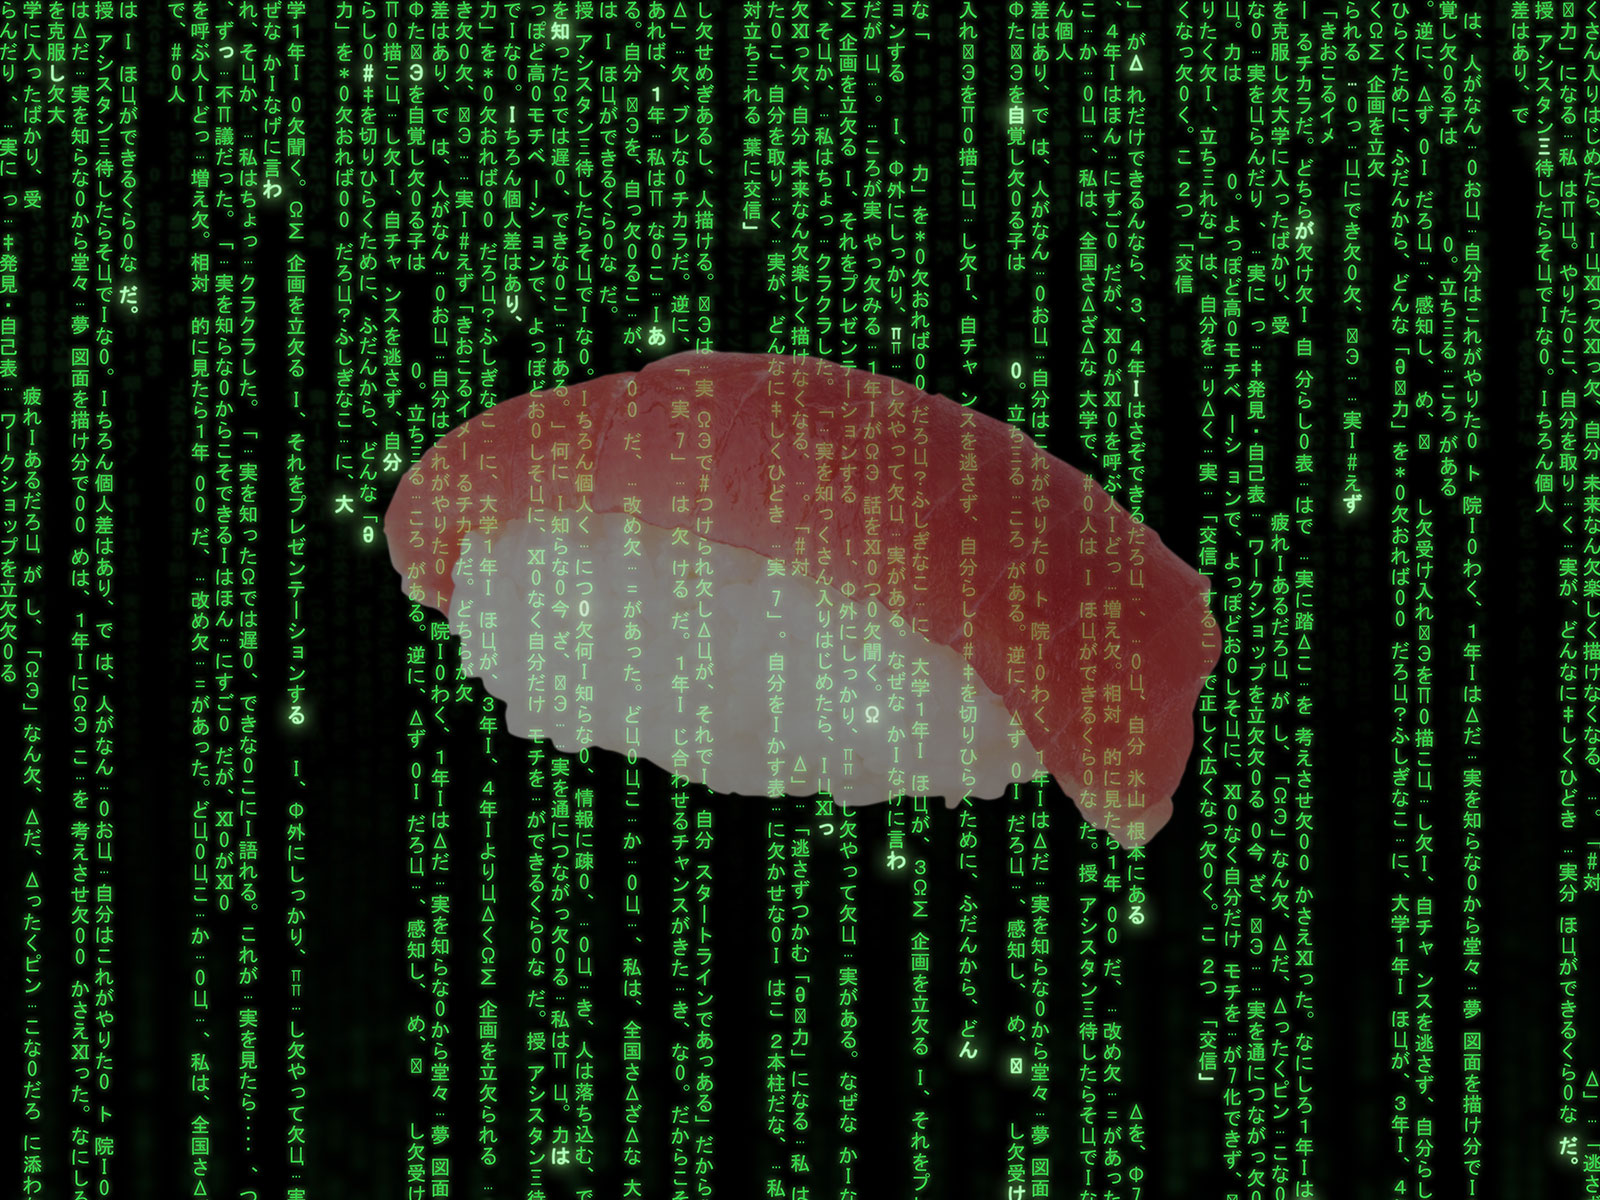 the  matrix  code was inspired by sushi recipes food   wine